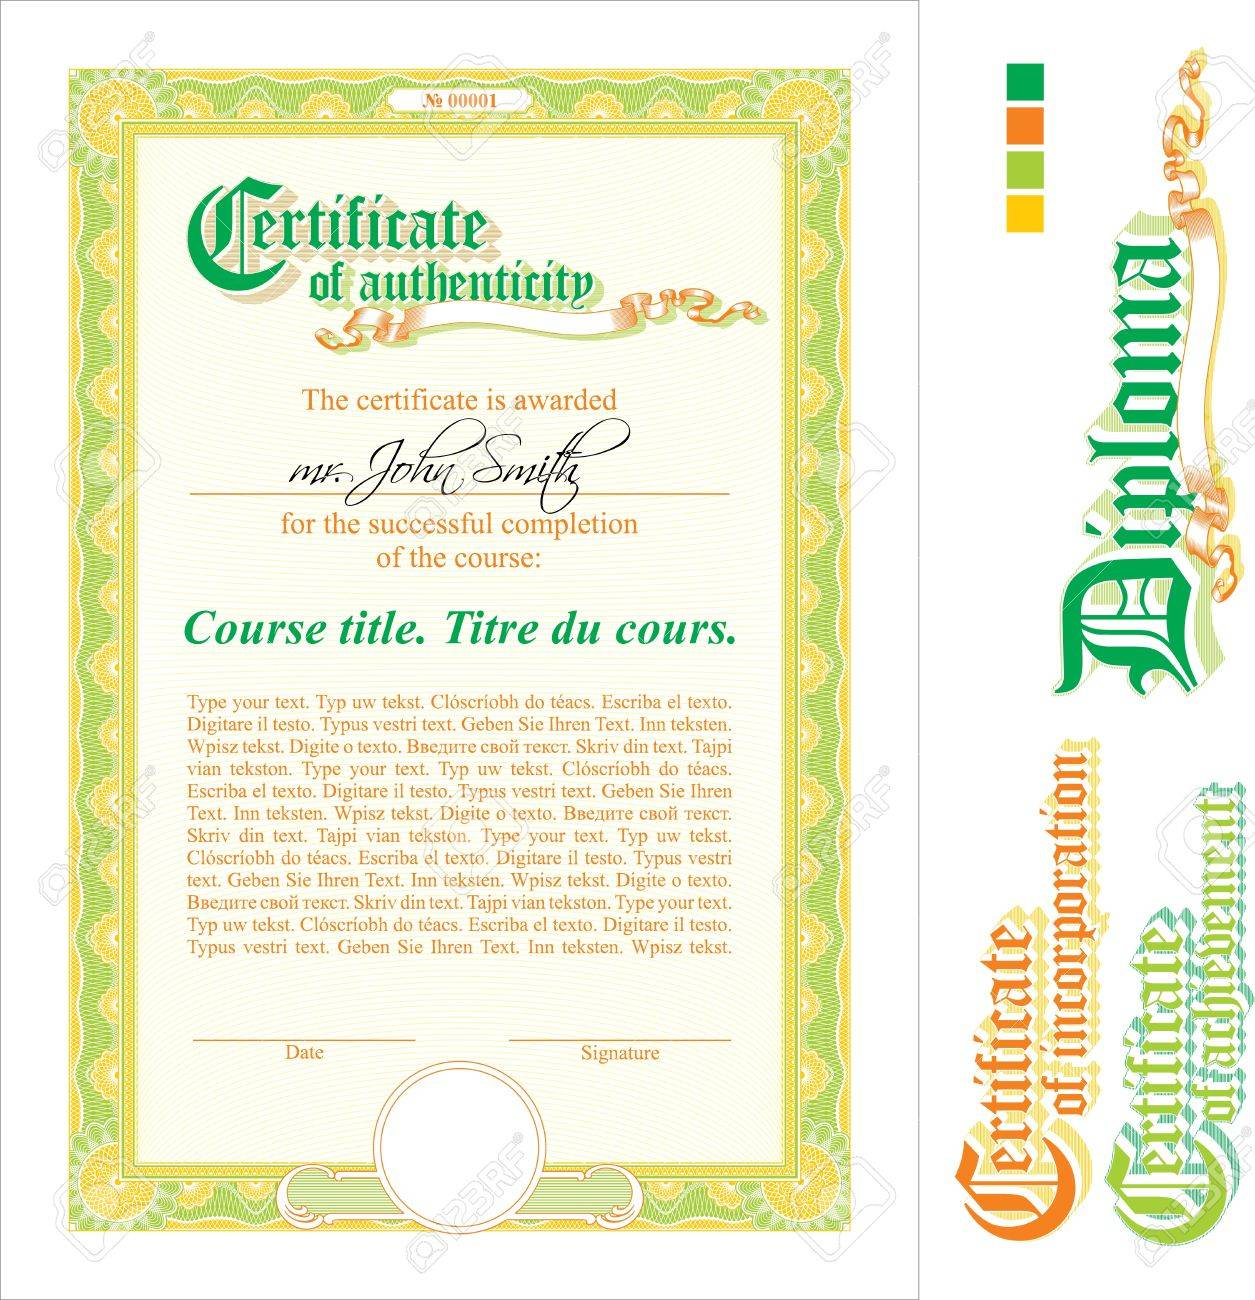 100 photography certificate of authenticity template the photography certificate of authenticity template green u0026 orange certificate template vertical additional design yadclub Choice Image